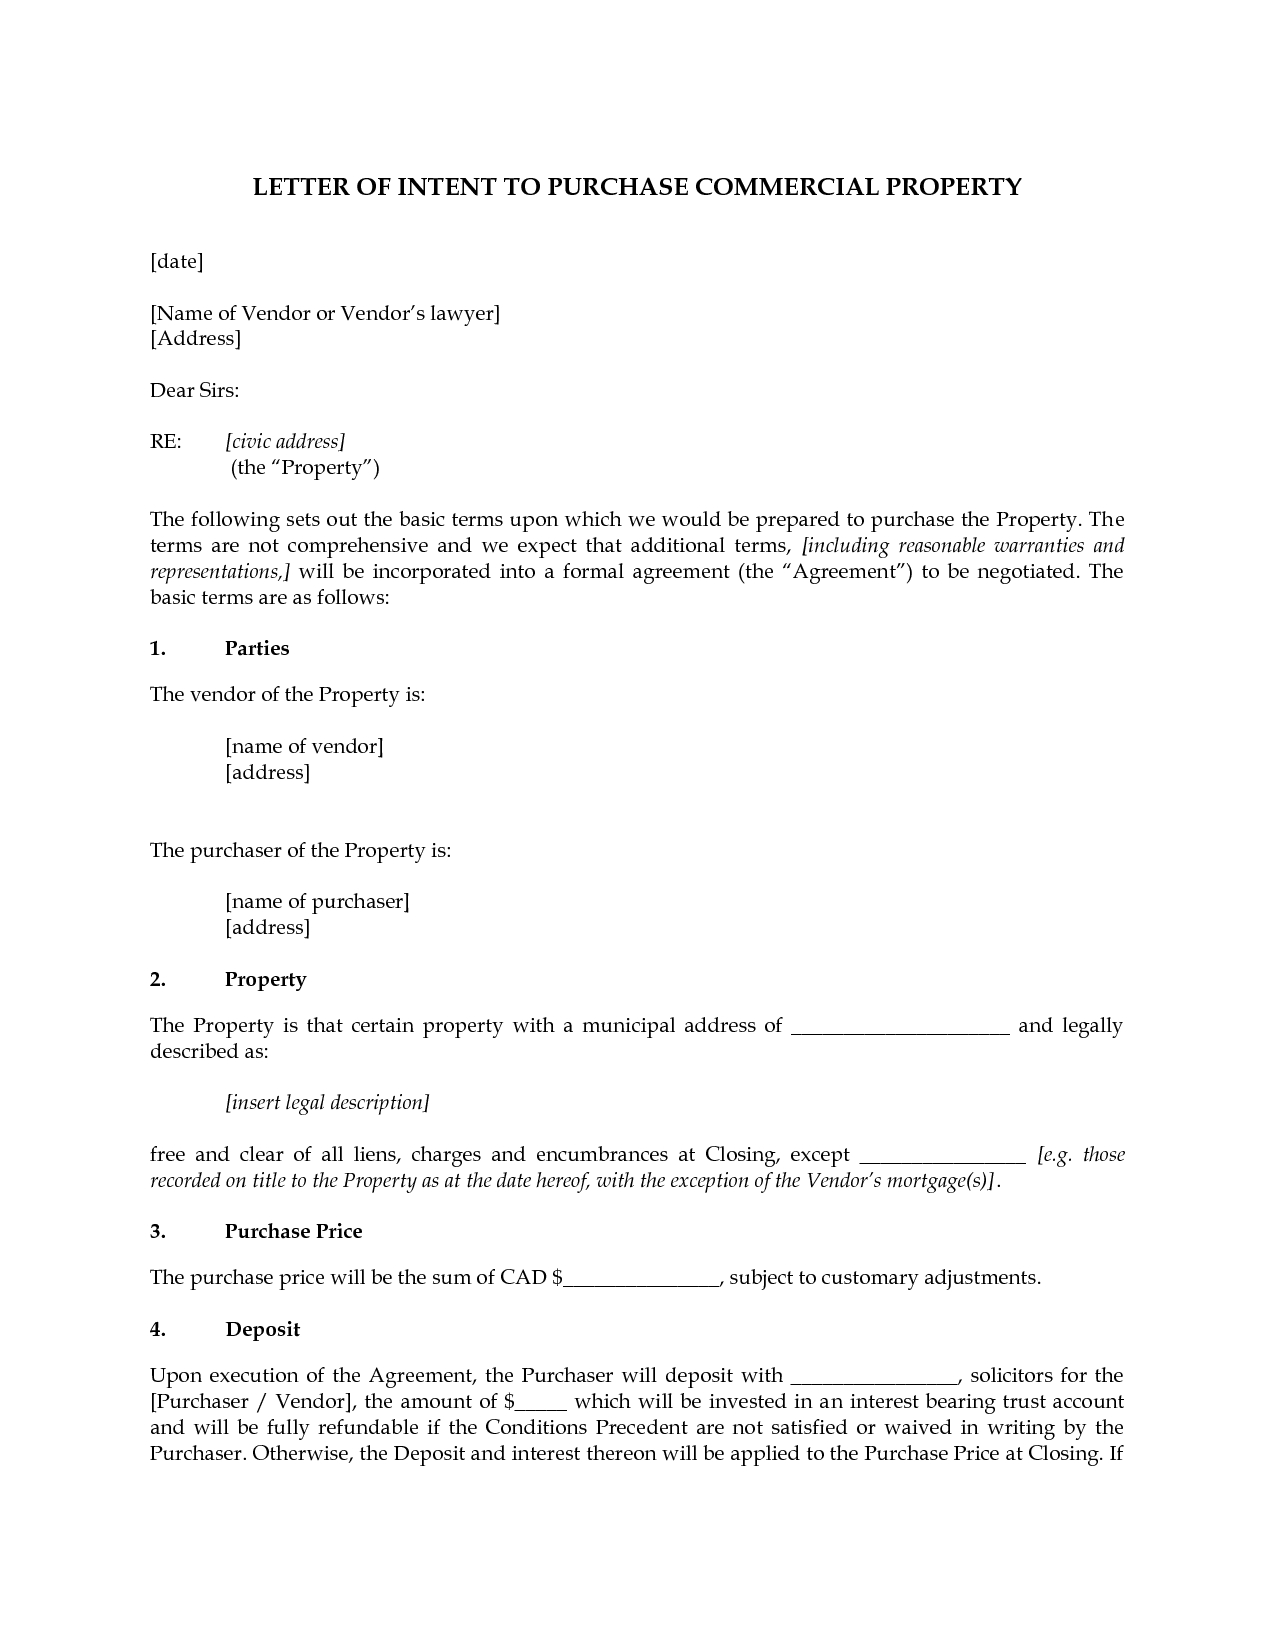 Commercial Real Estate Letter Of Intent Template - Mercial Real Estate Lease Letter Intent Template Purchase